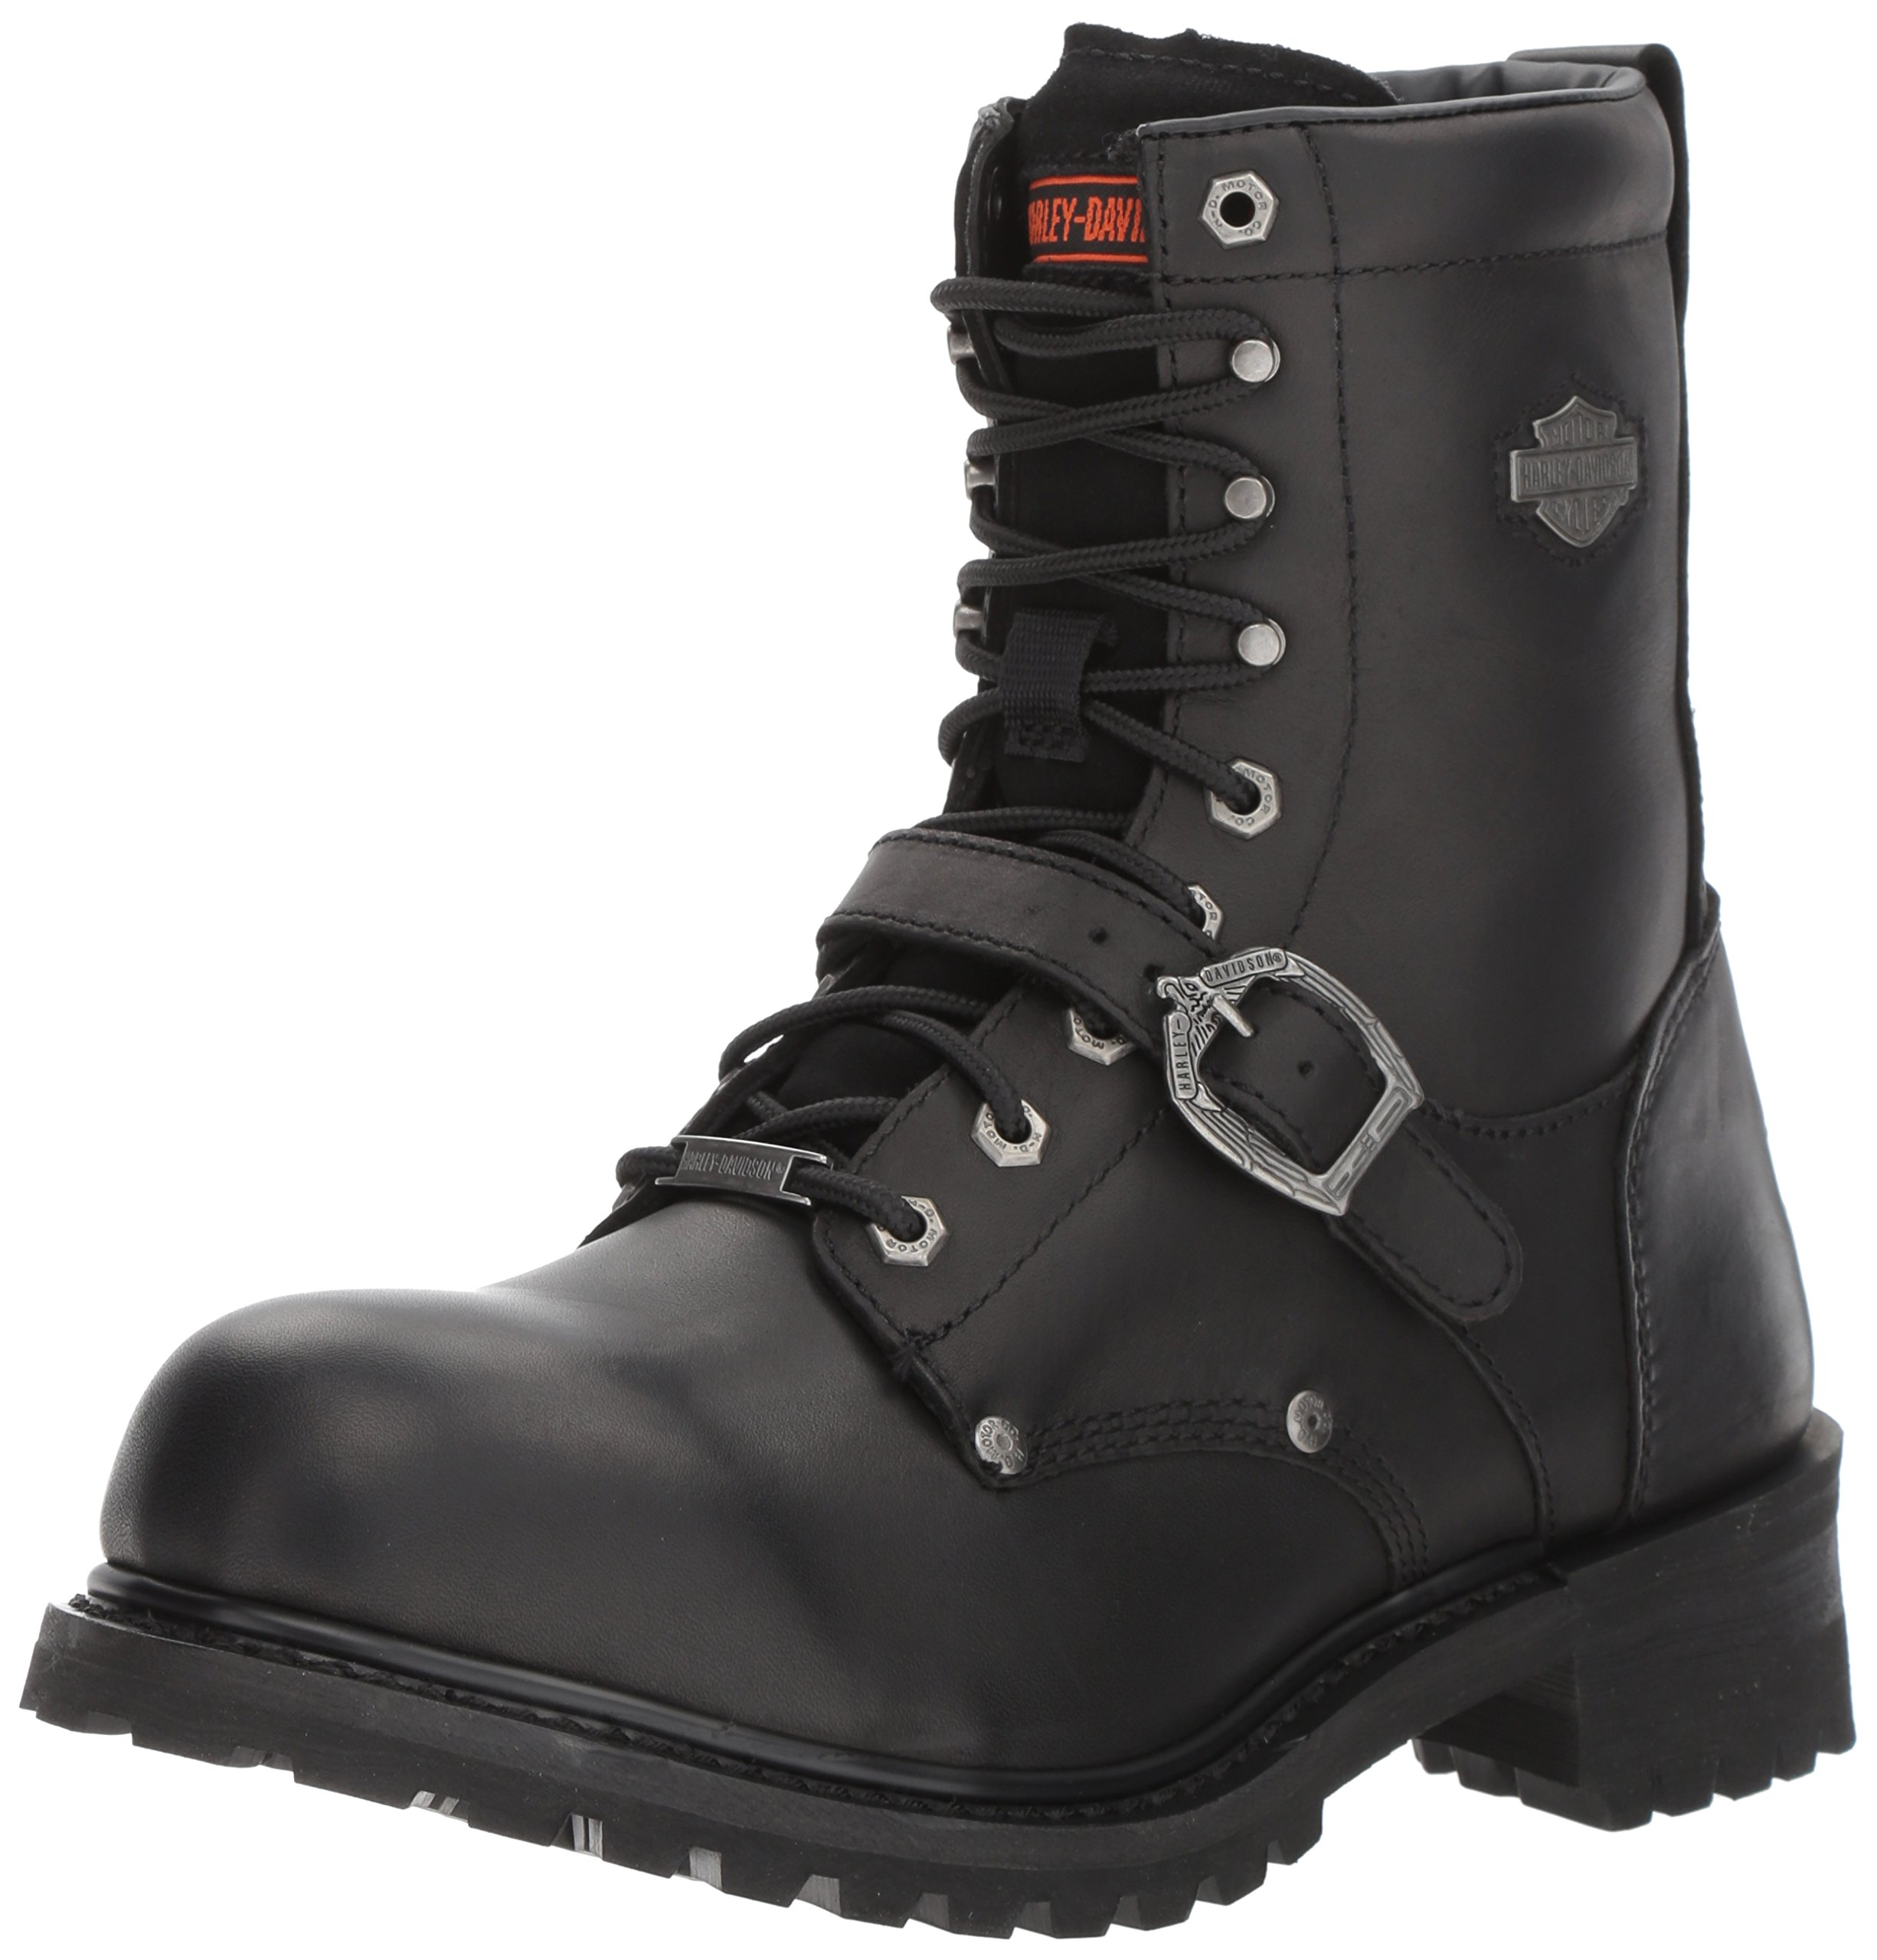 Harley-Davidson Men's Faded Glory Motorcycle Boot, Black, 10.5 Wide US